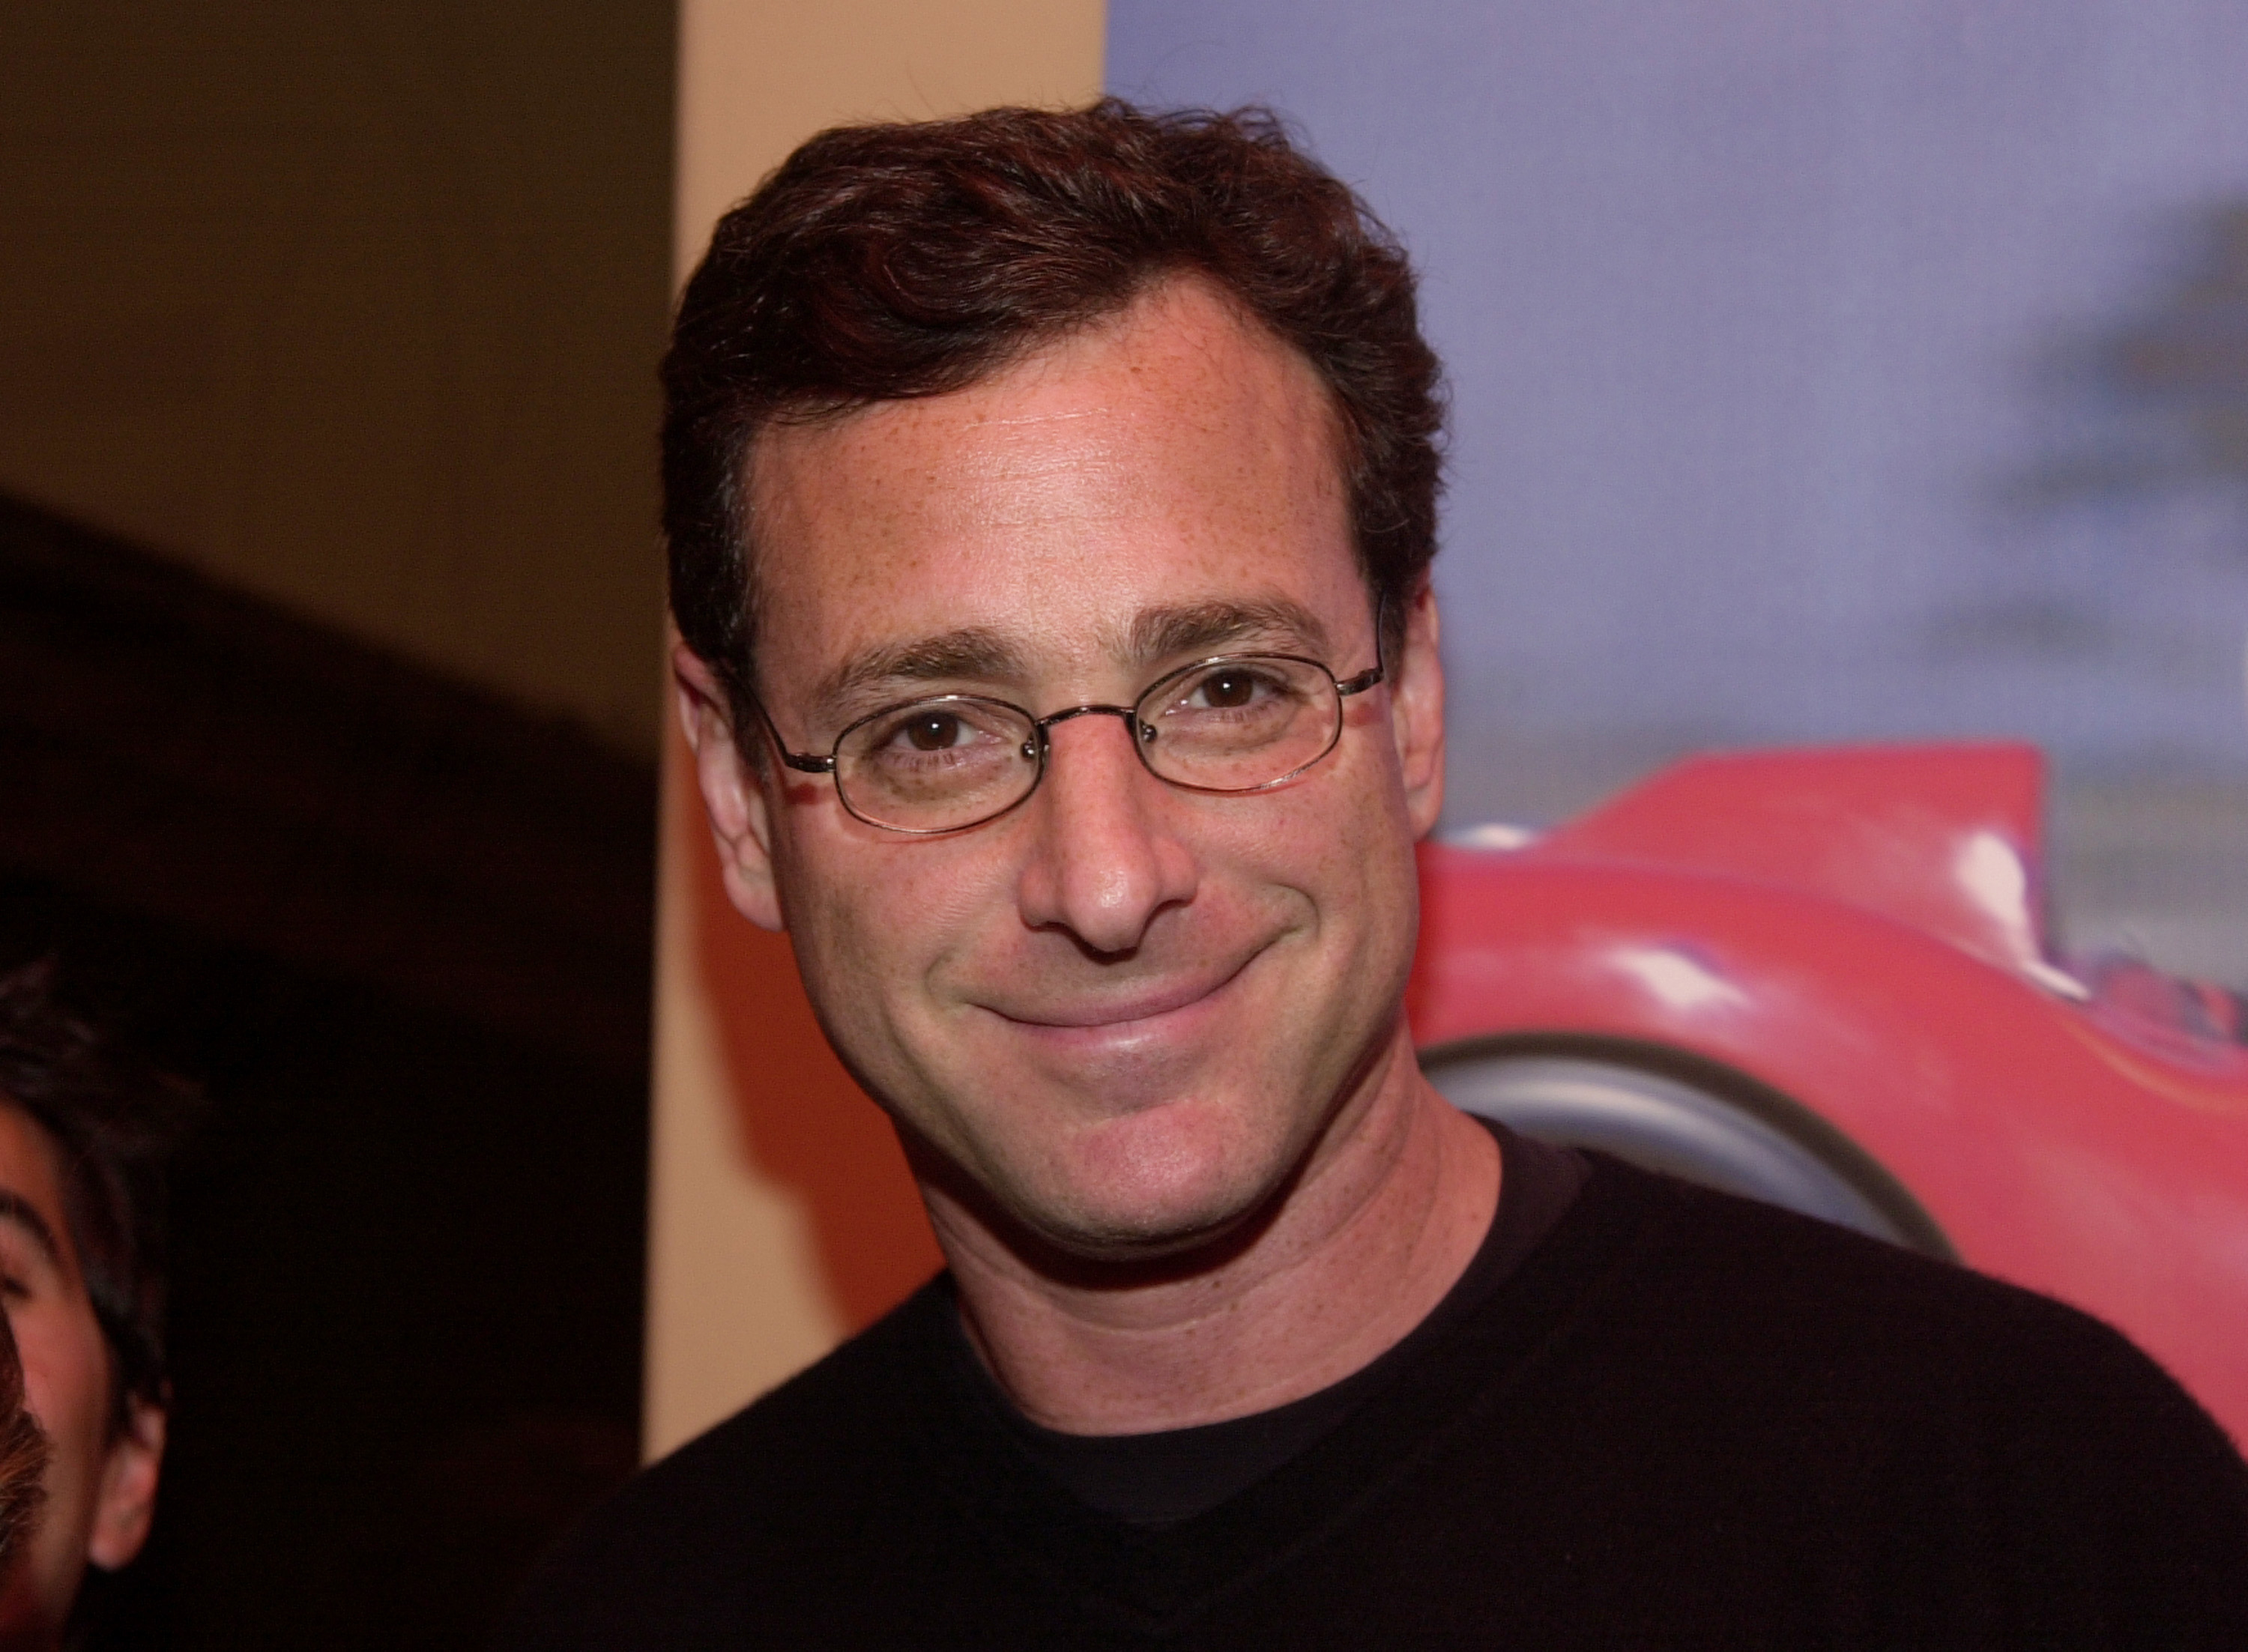 Bob Saget at the GQ Lounge at GQ Lounge in Los Angeles, California.